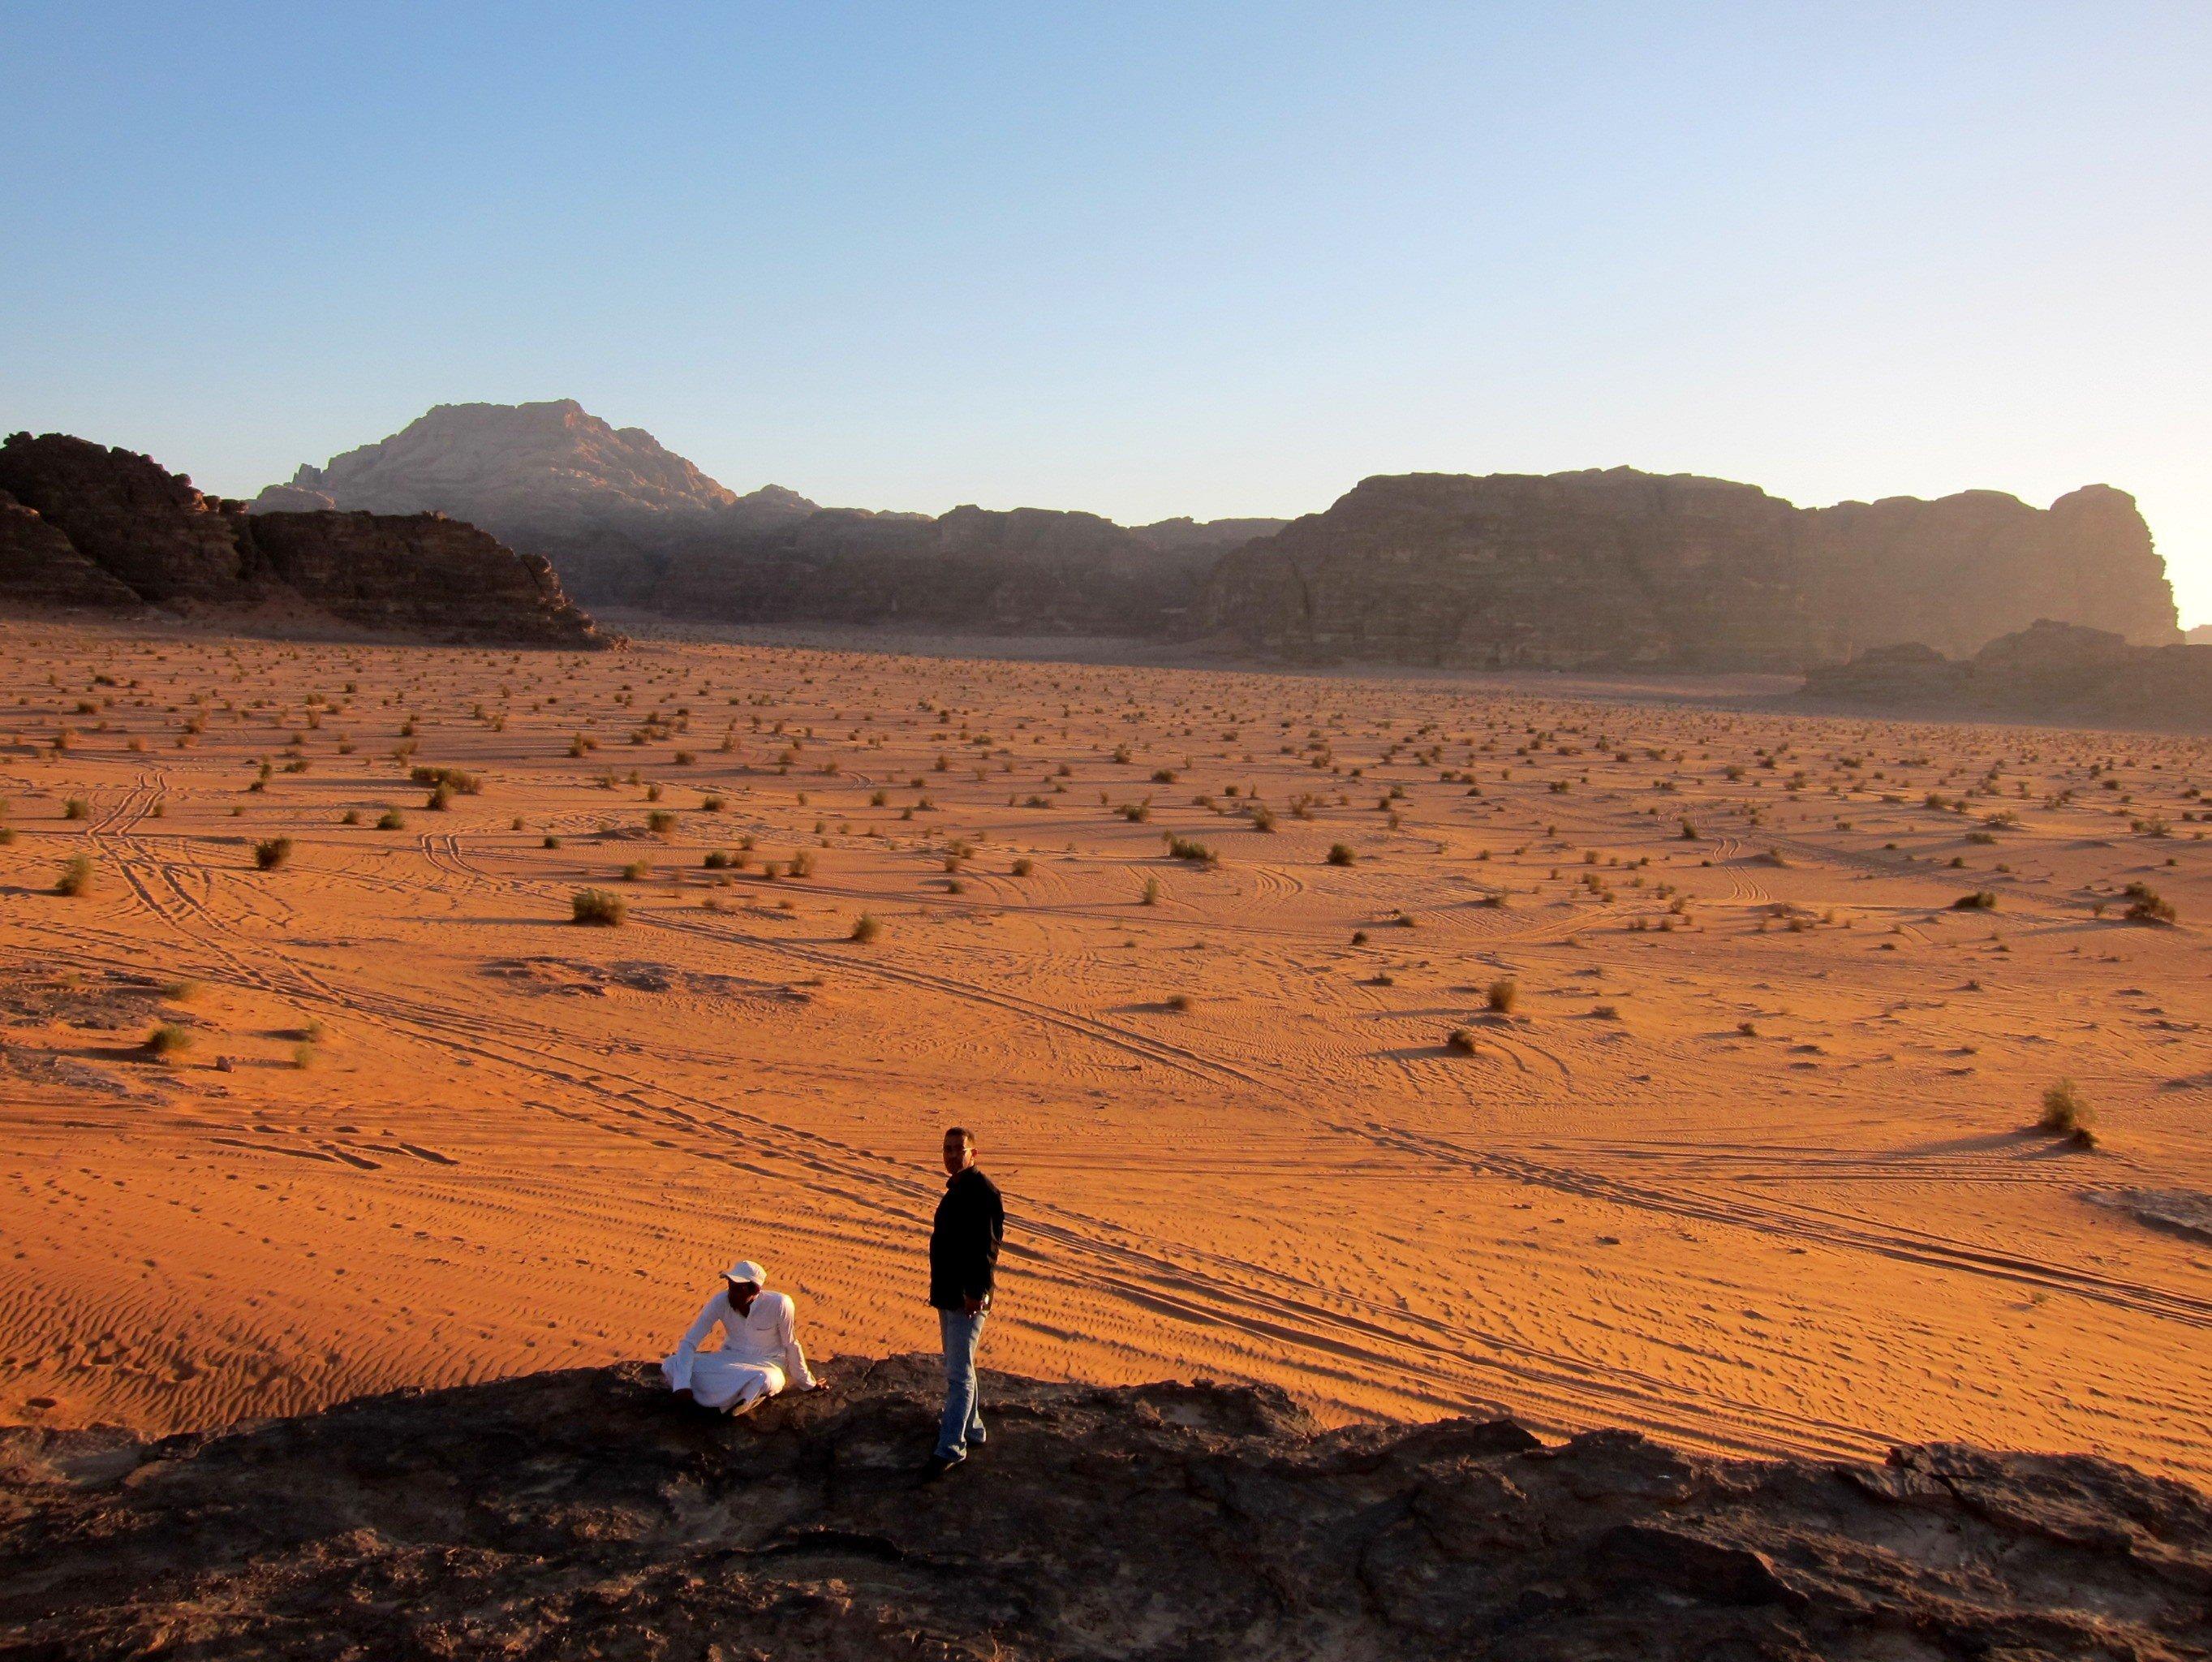 Wadi Rum Adventure Tours | Wadi Rum Tours From Aqaba | Wadi Rum Safari